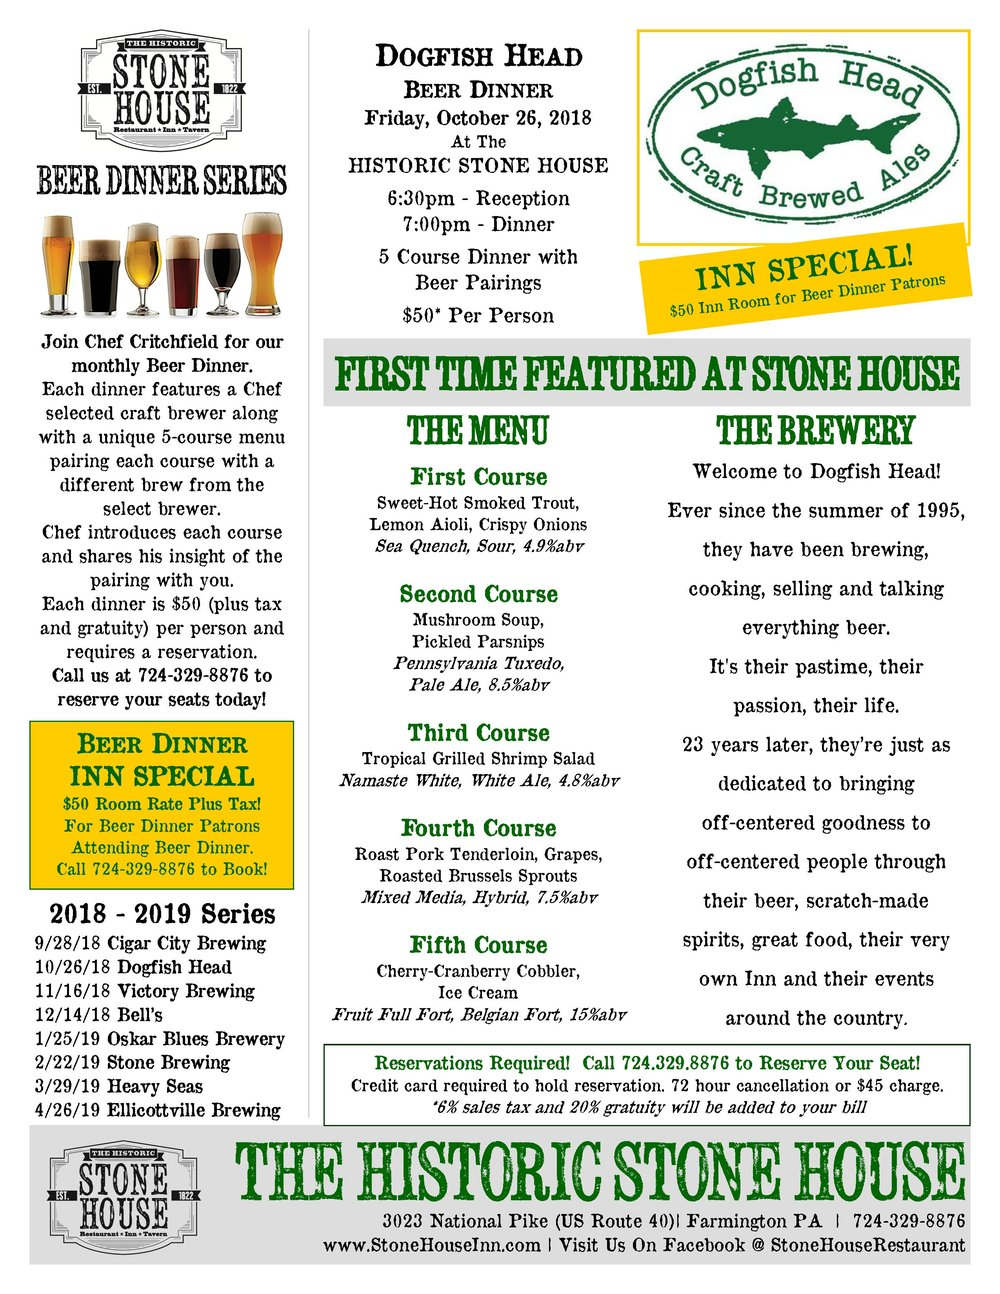 Dogfish Head Beer Dinner 102618.jpg